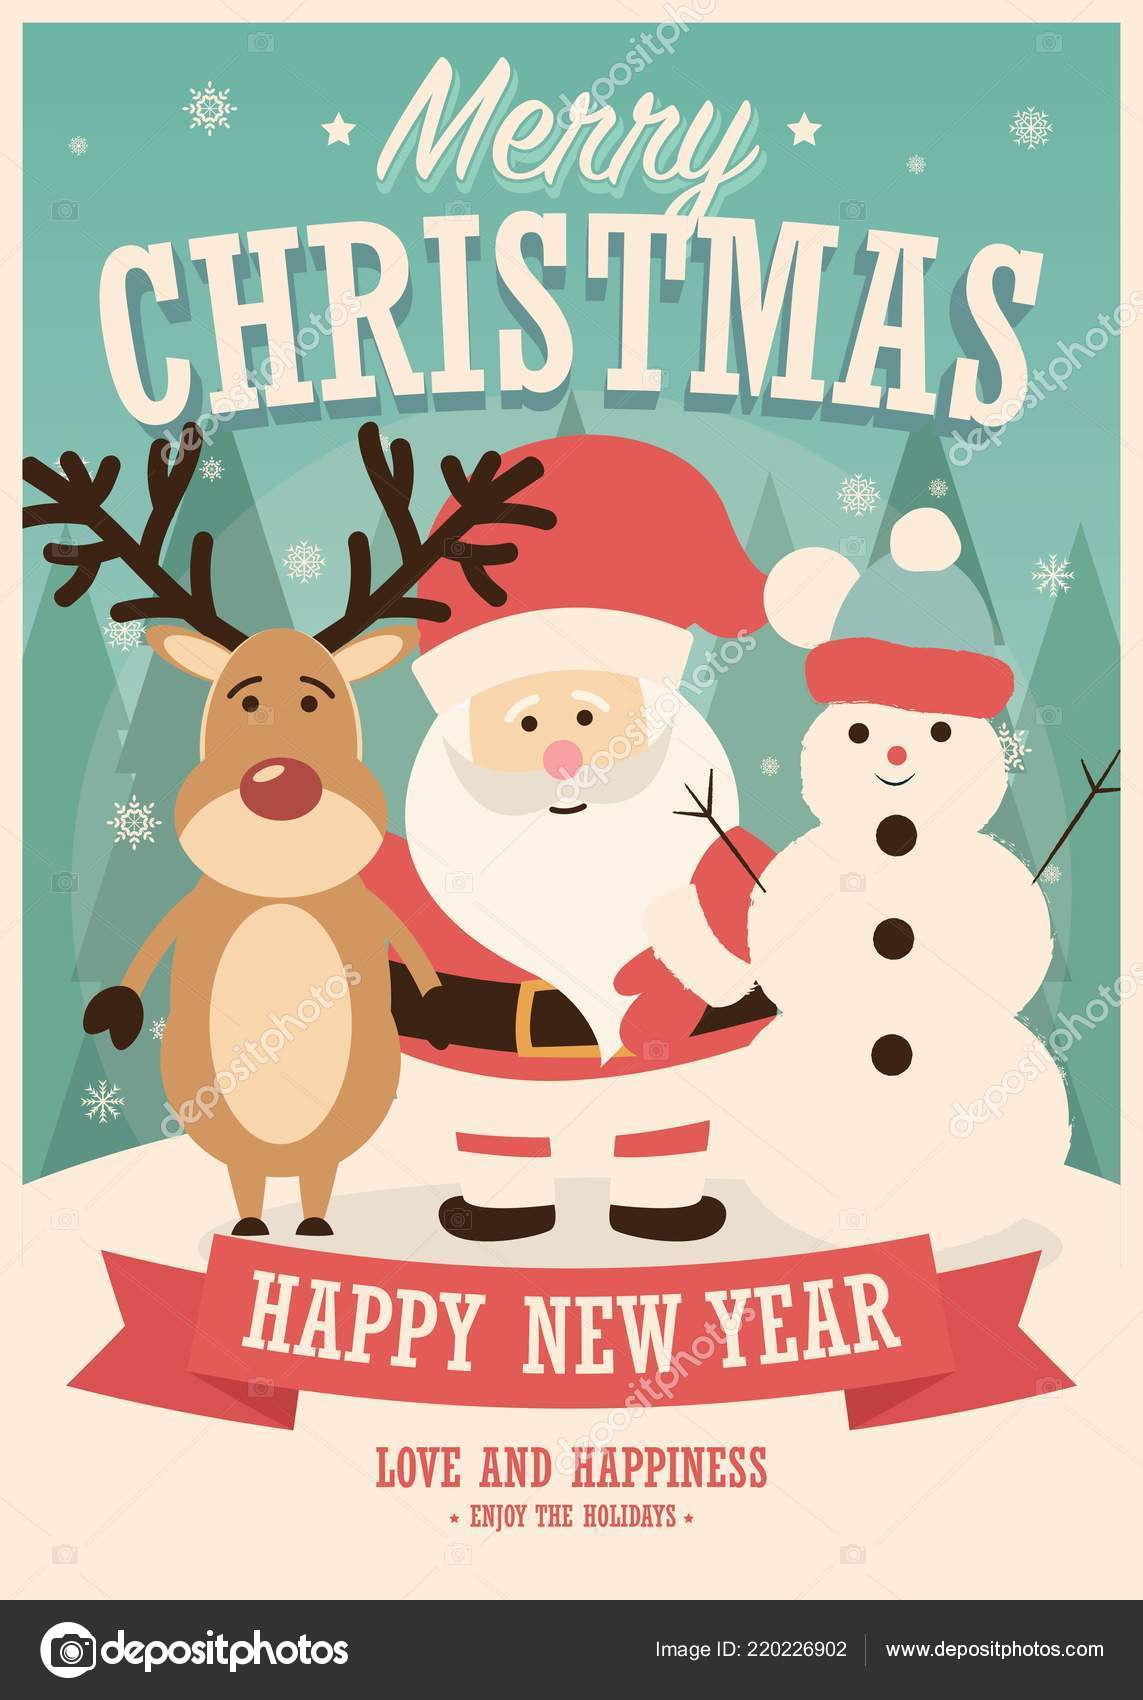 Merry Christmas Card Santa Claus Reindeer Snowman Winter Background ...